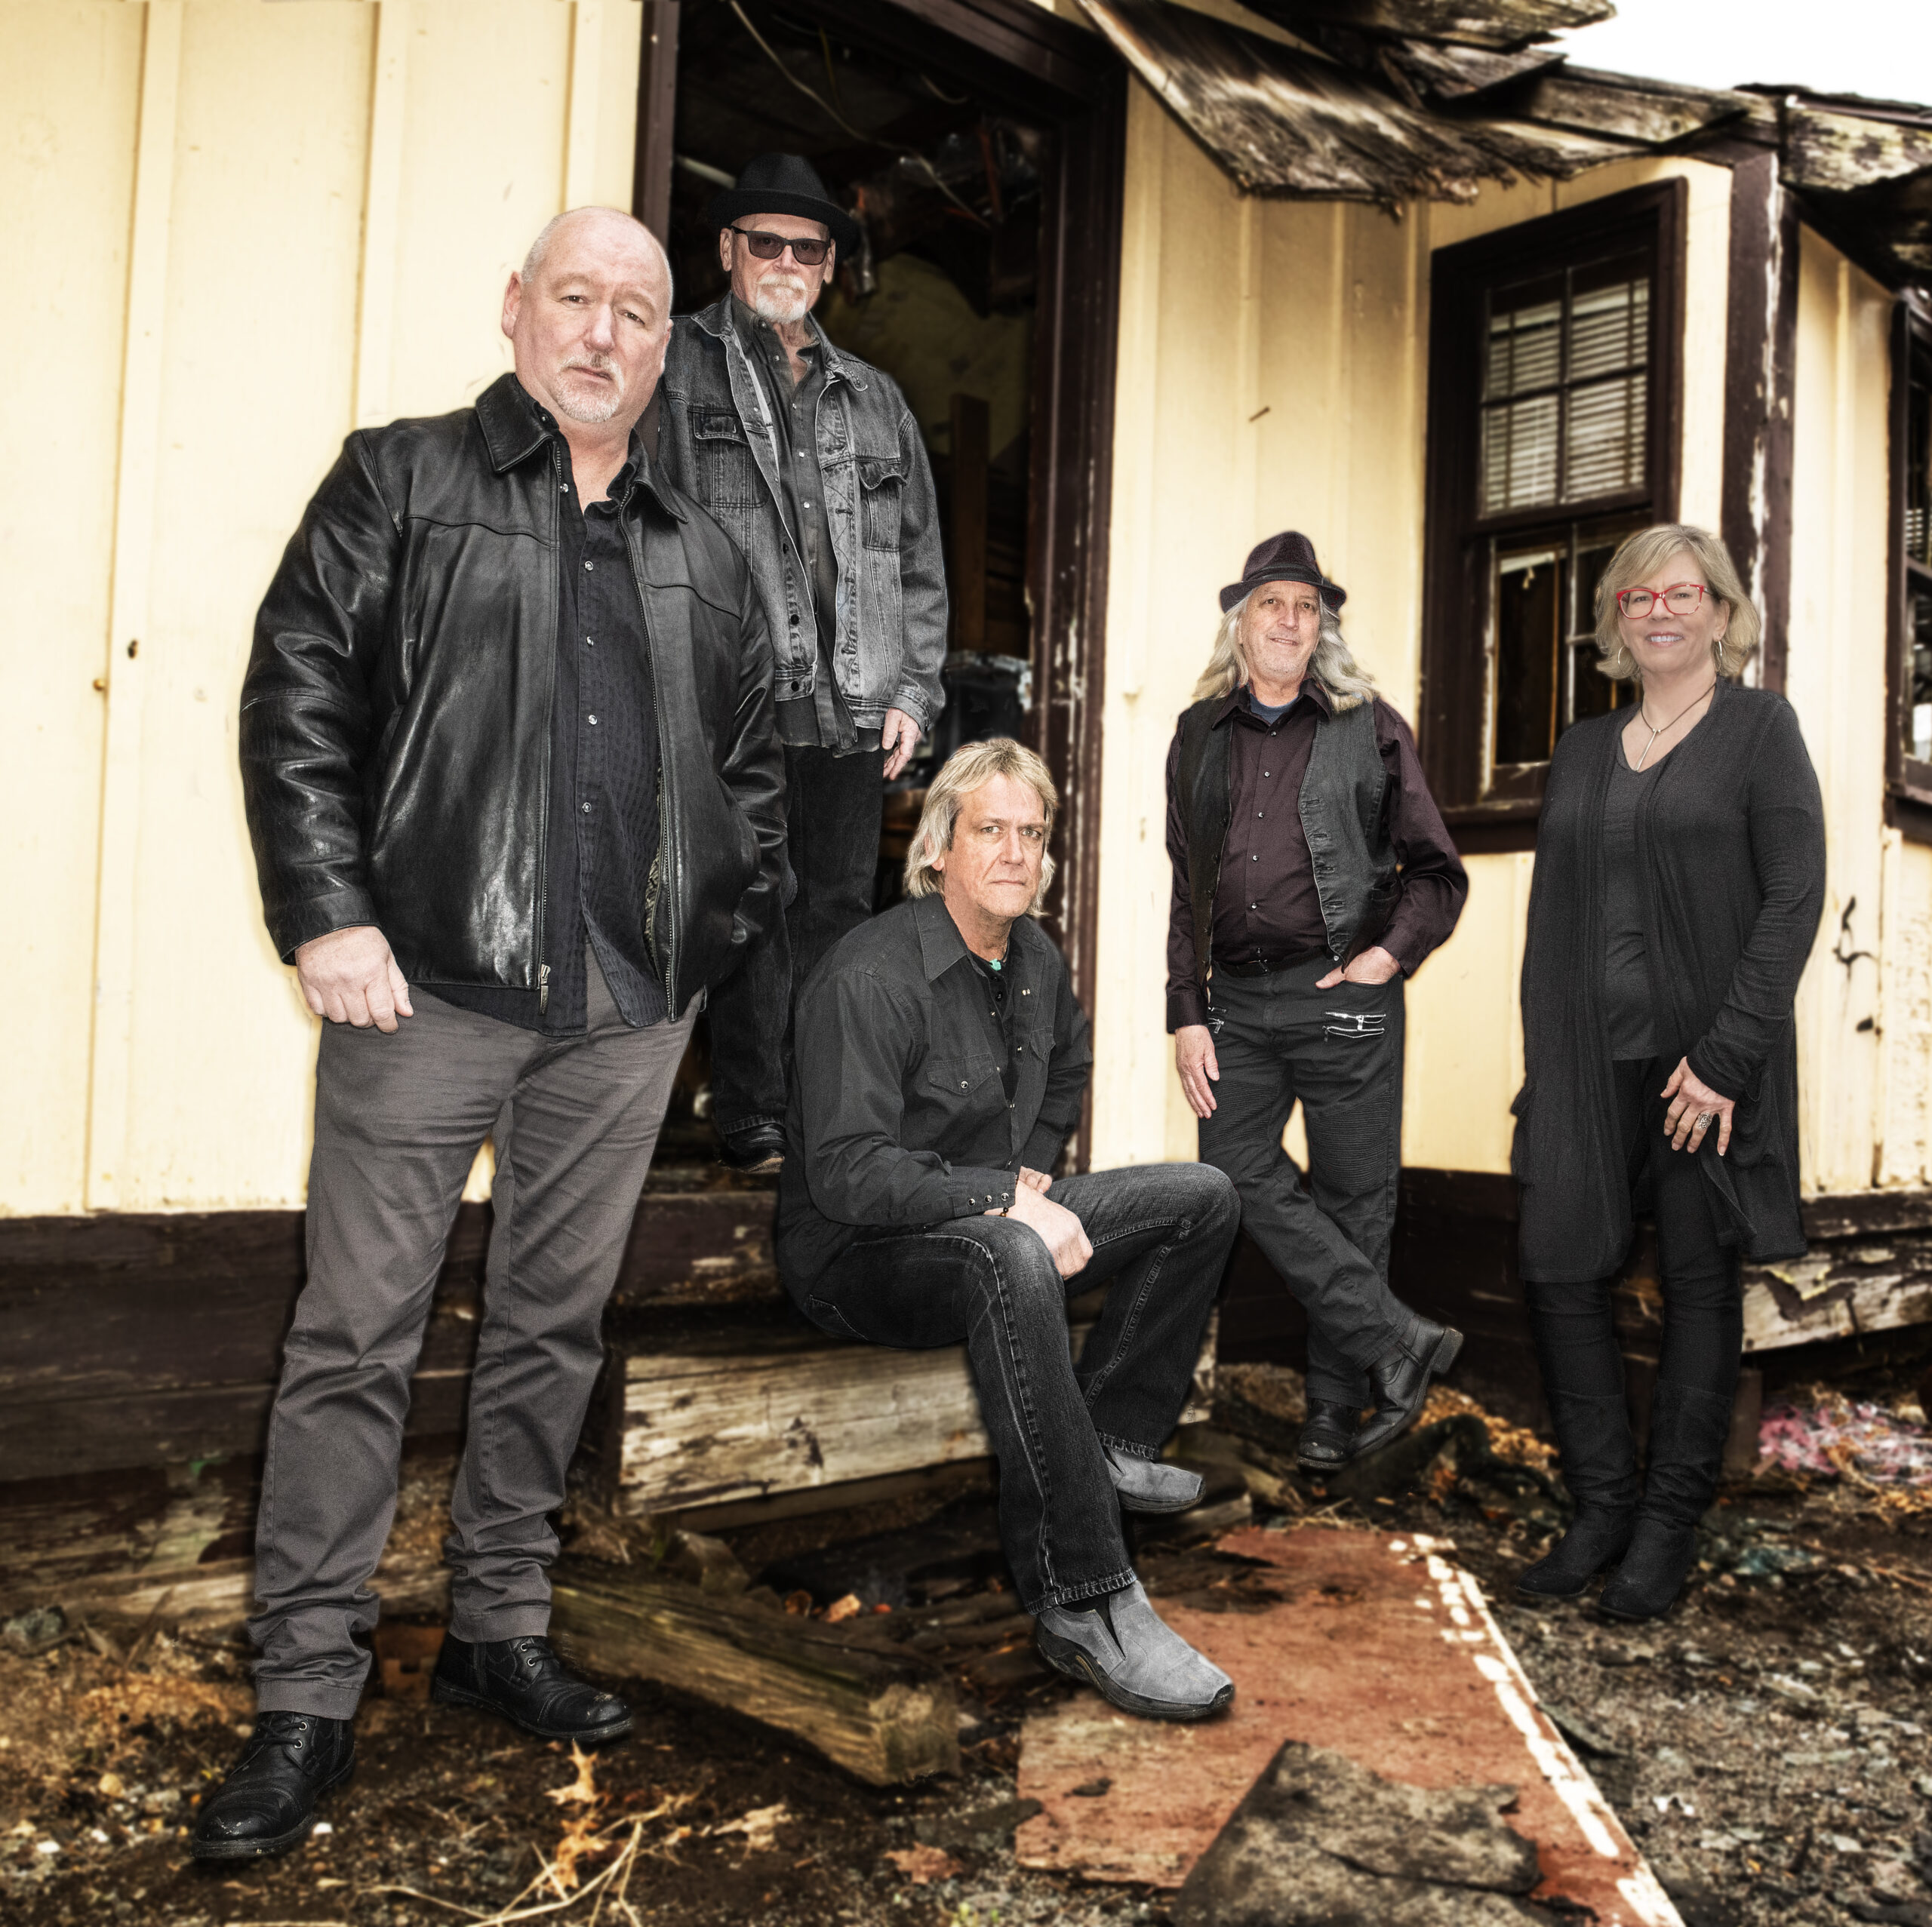 Slidewinder Blues Band – Introducing – AR Promotion – New Music